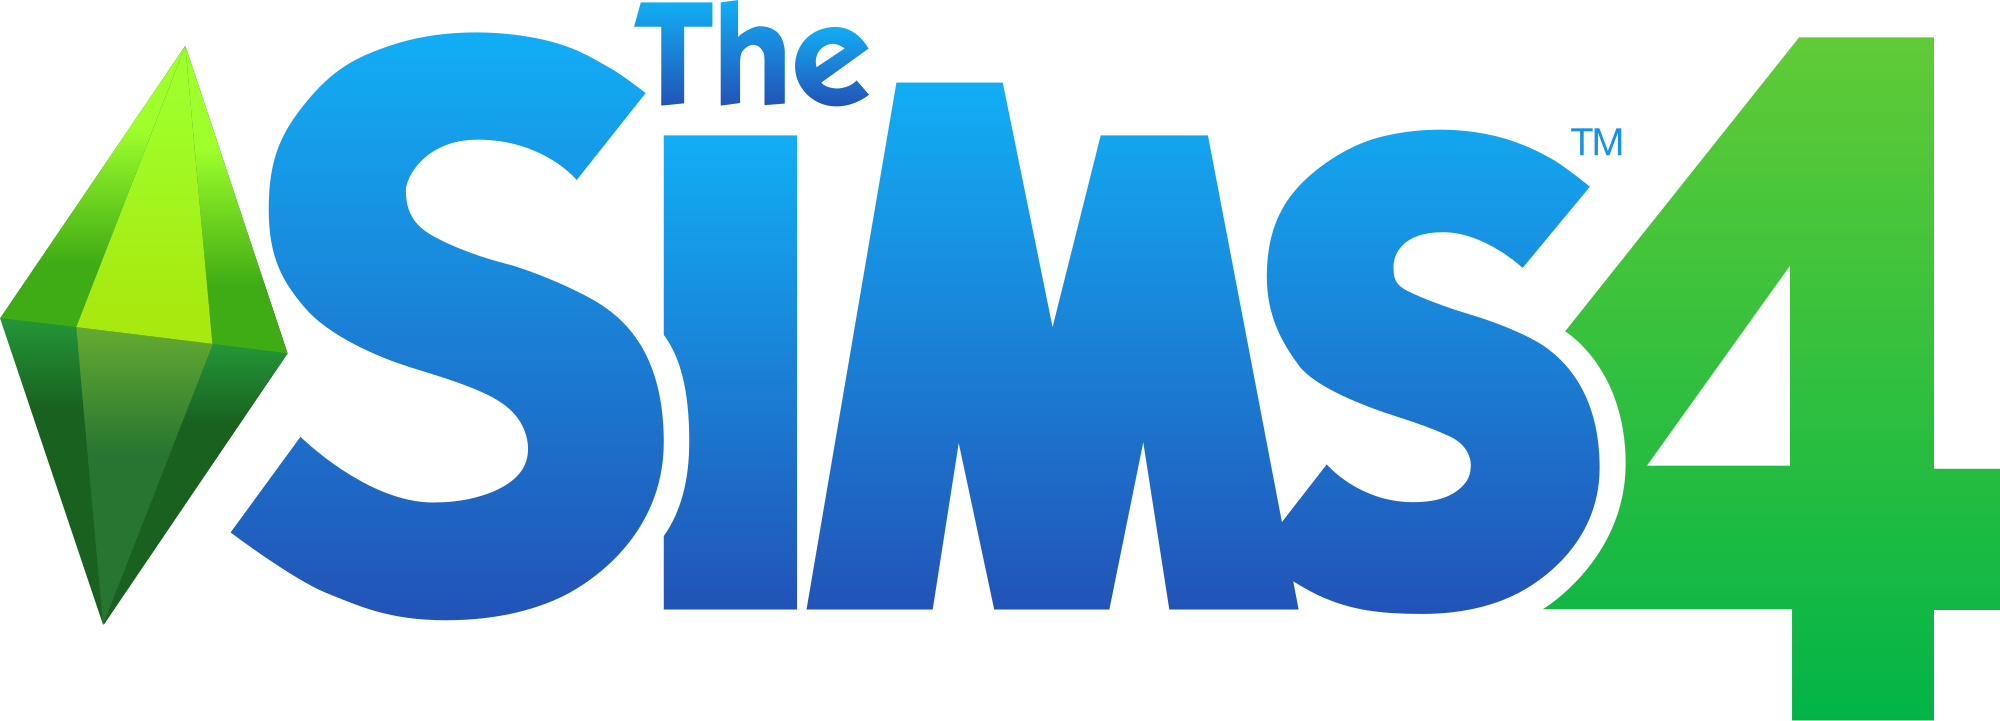 4 transparent the sims